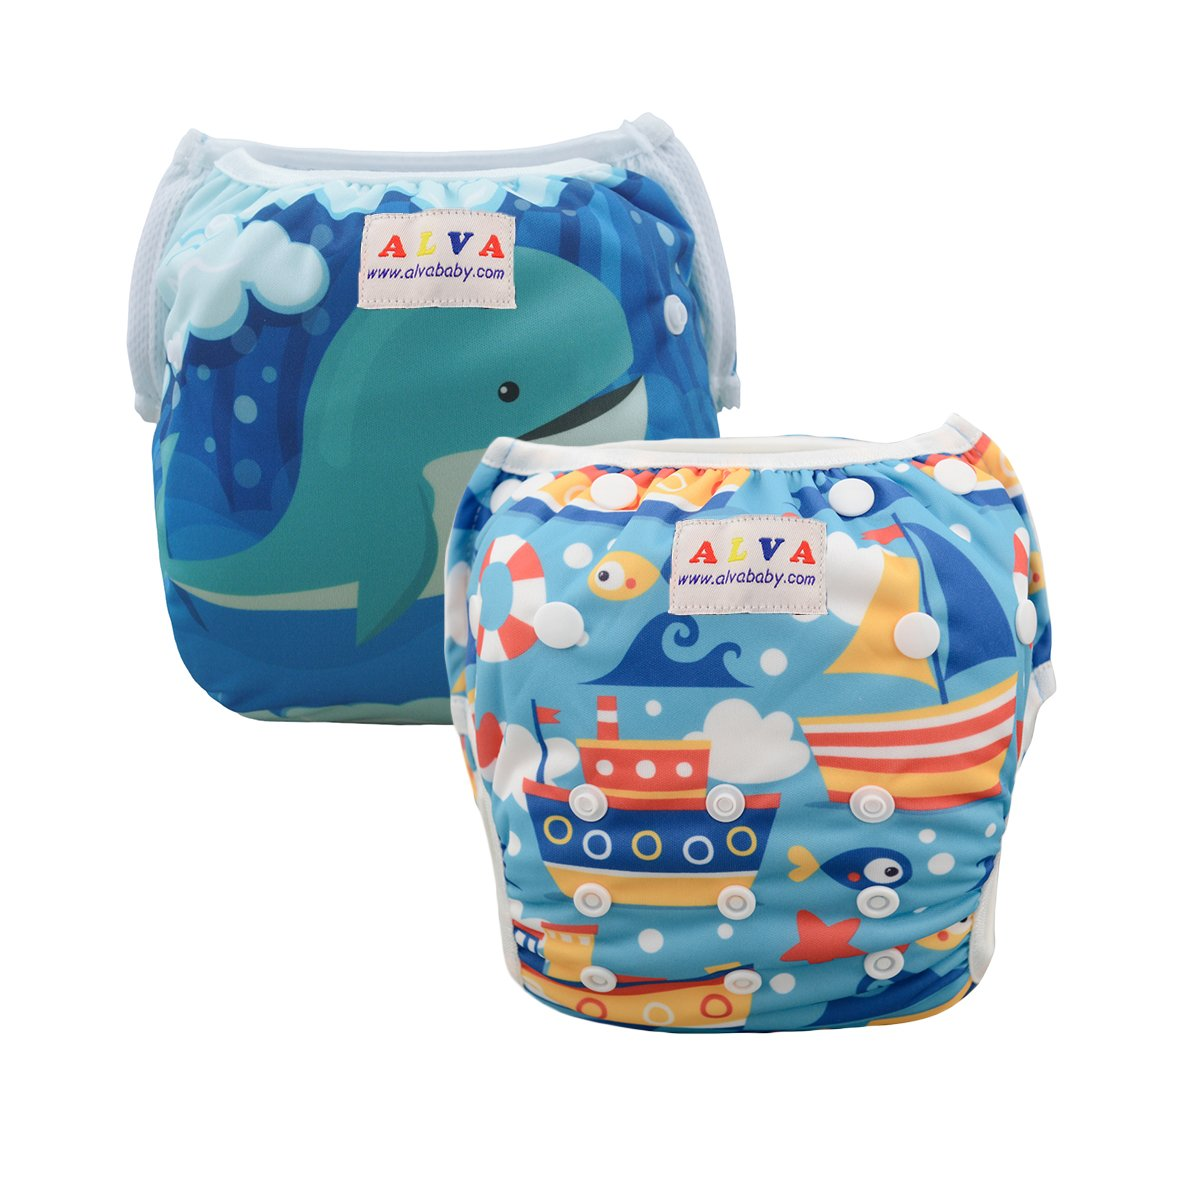 ALVABABY Swim Diaper Reuseable Washable Adjustable 2 Pack One Size Baby Shower Gifts SWD52-53-252-CA